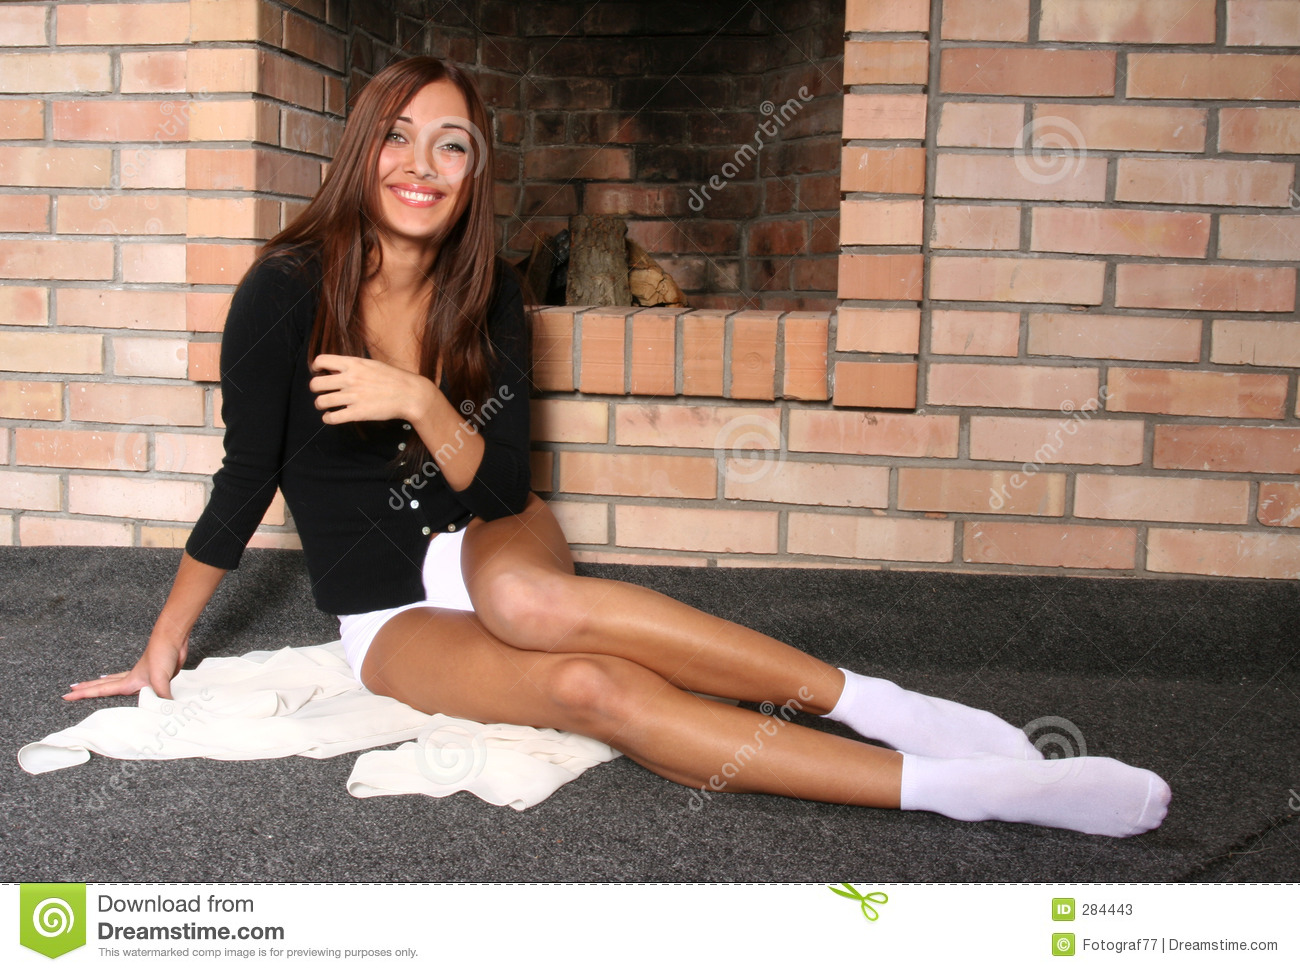 Brunette at a fireplace